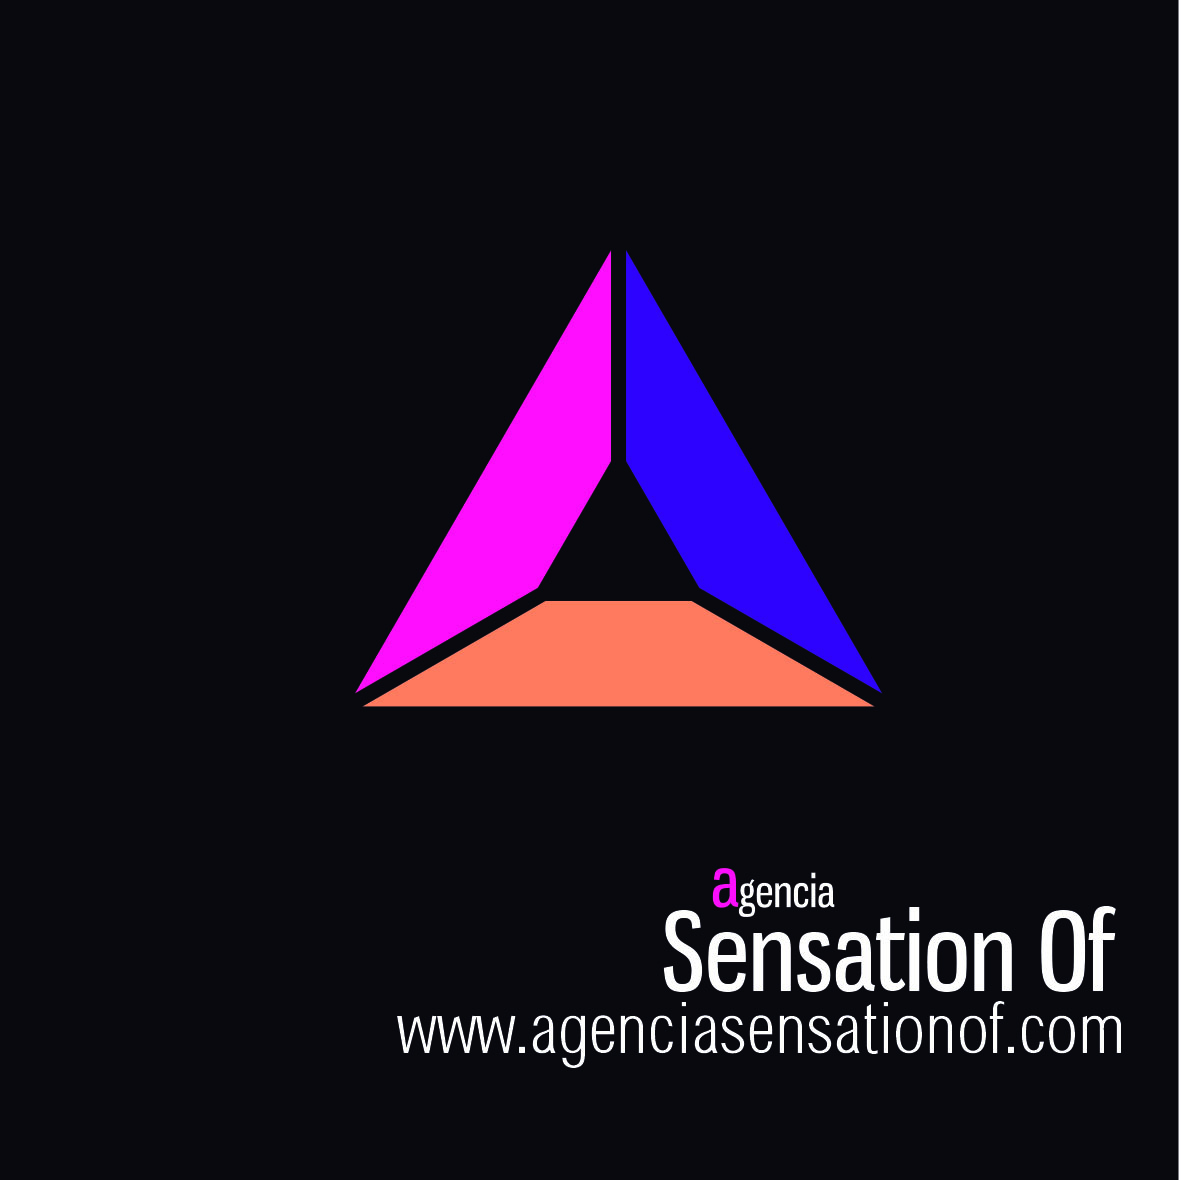 Agencia Sensation Of (@agenciasensationof) Cover Image